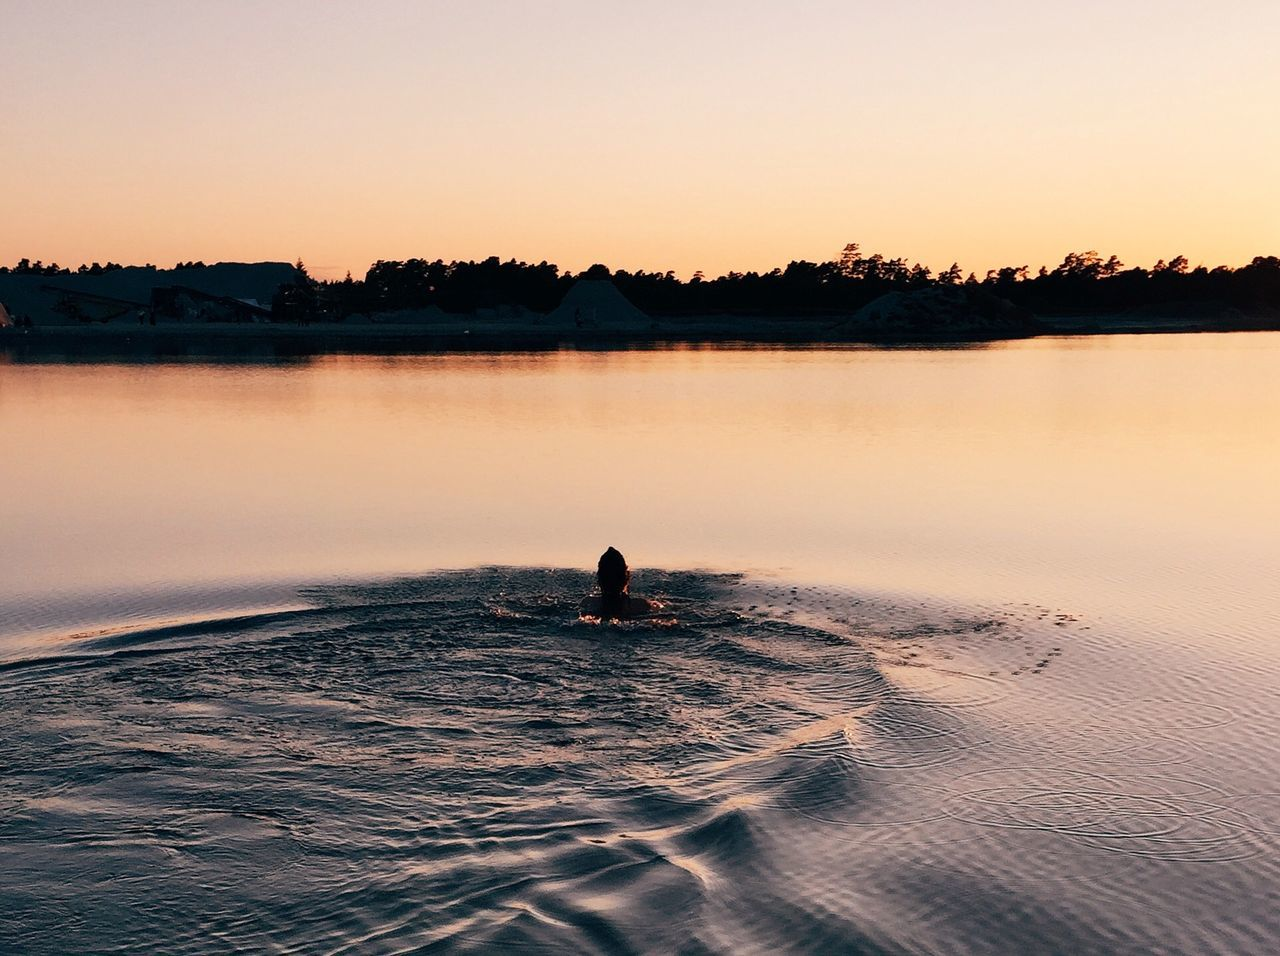 Person swimming in lake during sunset